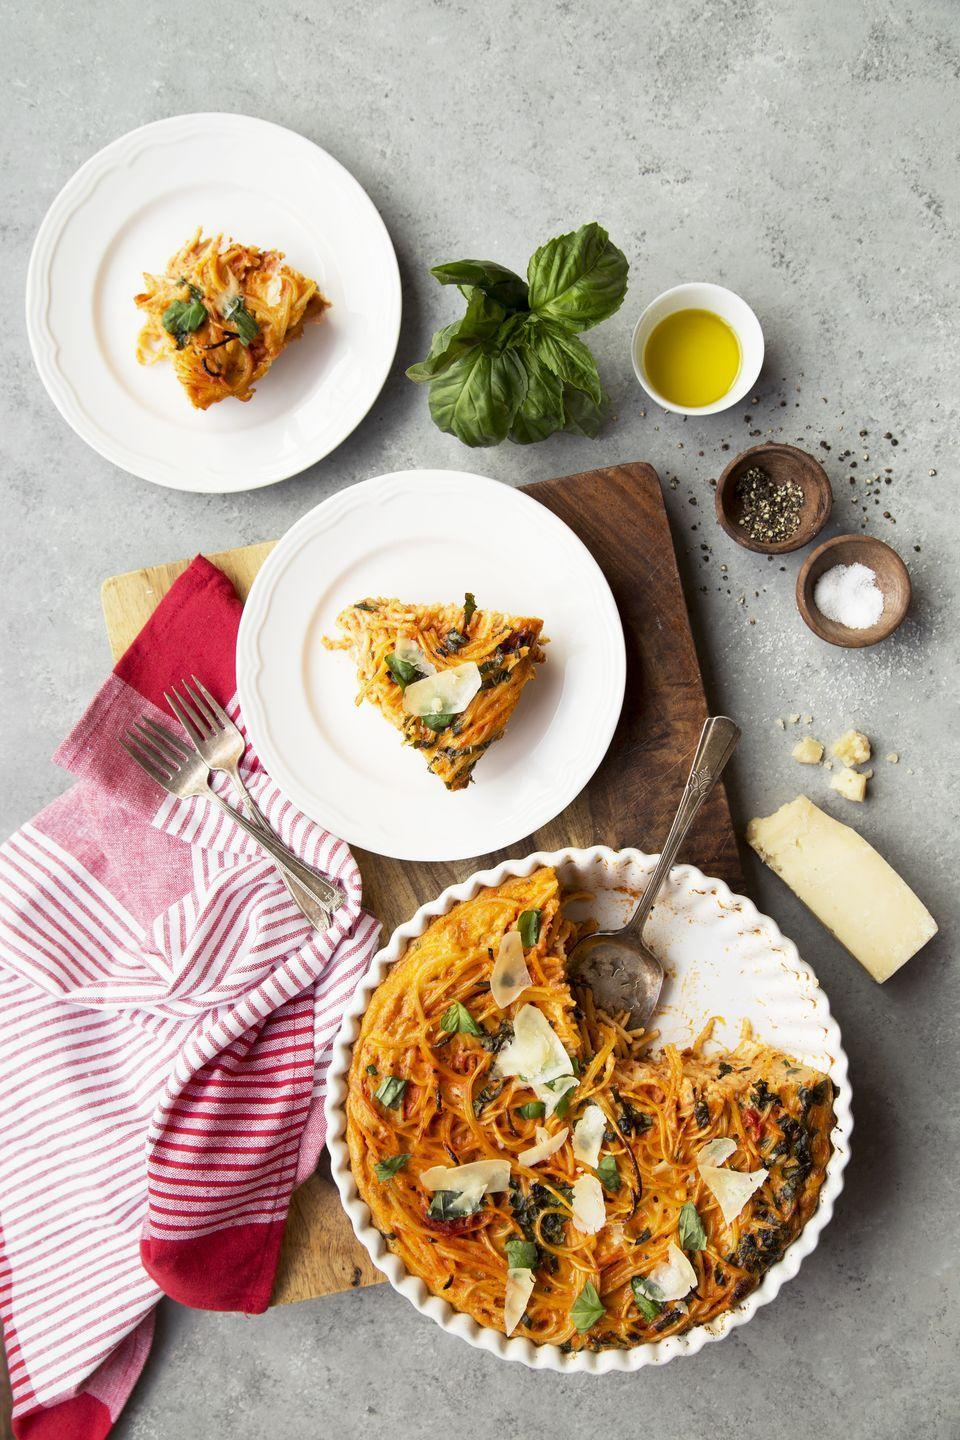 """<p>You'll never go back to a pastry crust after this one.</p><p>Get the recipe from <a href=""""/cooking/recipe-ideas/recipes/a52307/spaghetti-quiche-recipe/"""" data-ylk=""""slk:Delish"""" class=""""link rapid-noclick-resp"""">Delish</a>.</p>"""